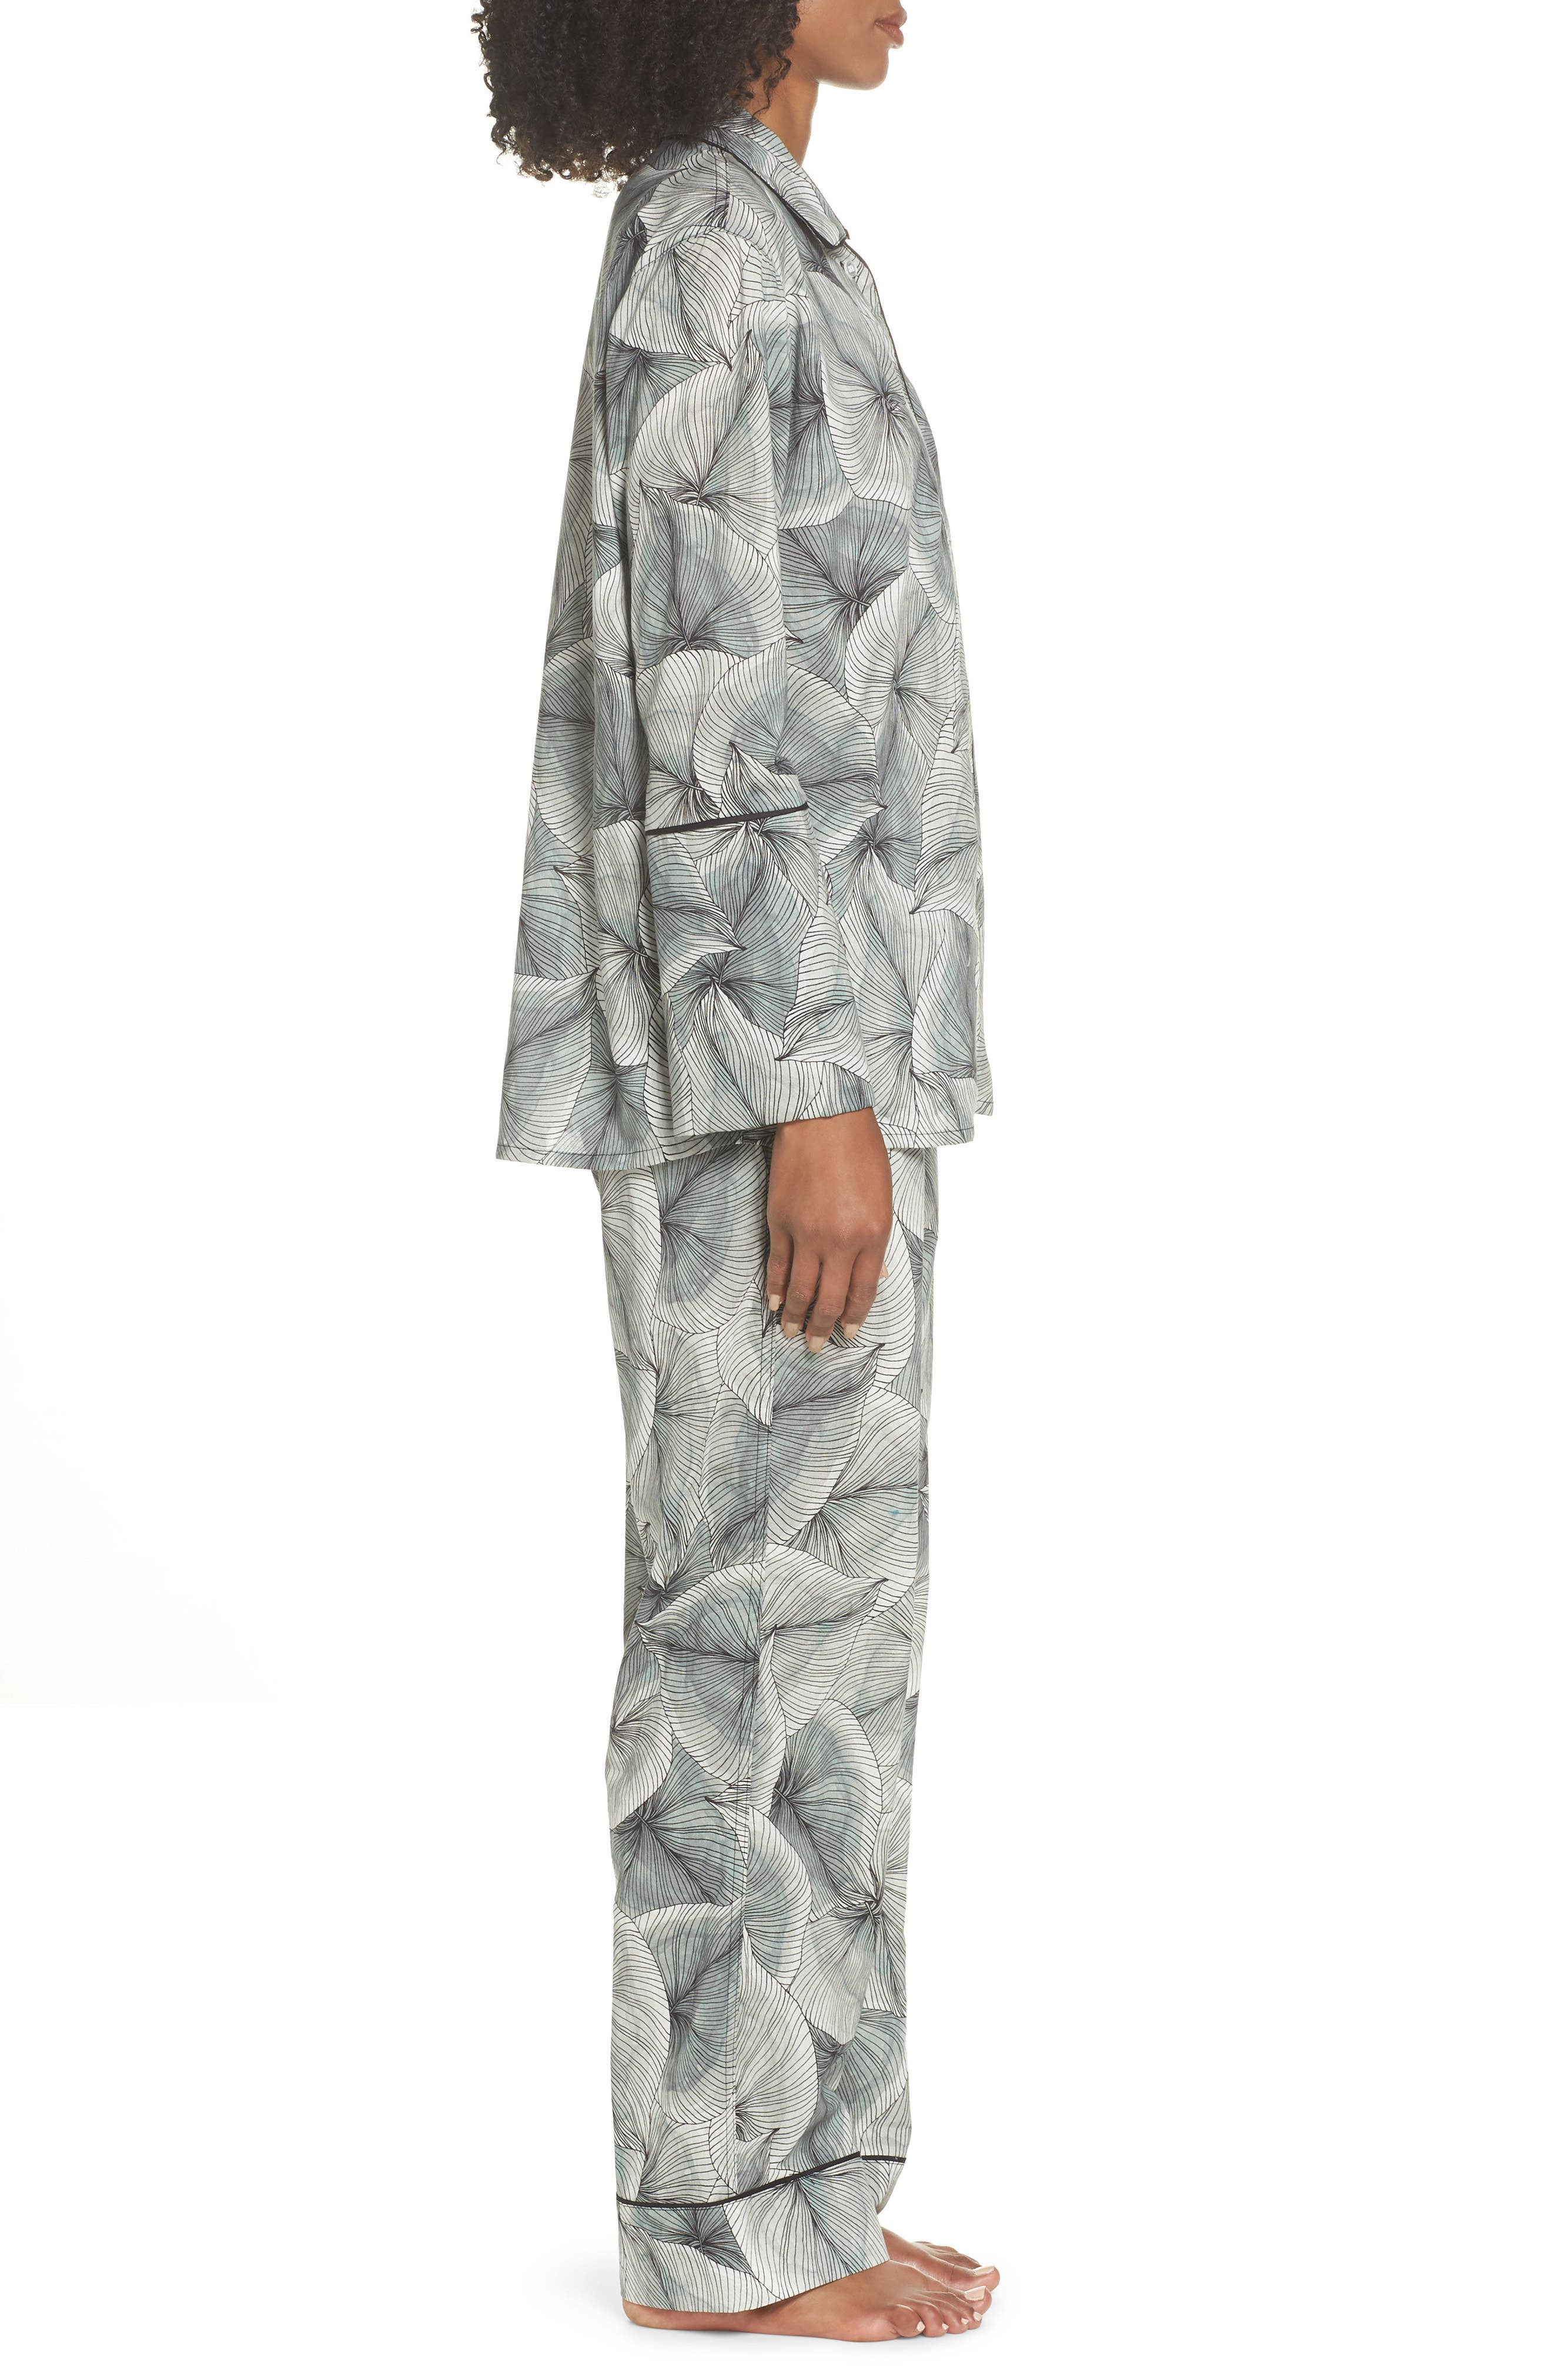 Cotton Voile Pajamas,                             Alternate thumbnail 3, color,                             LEAF PRINT